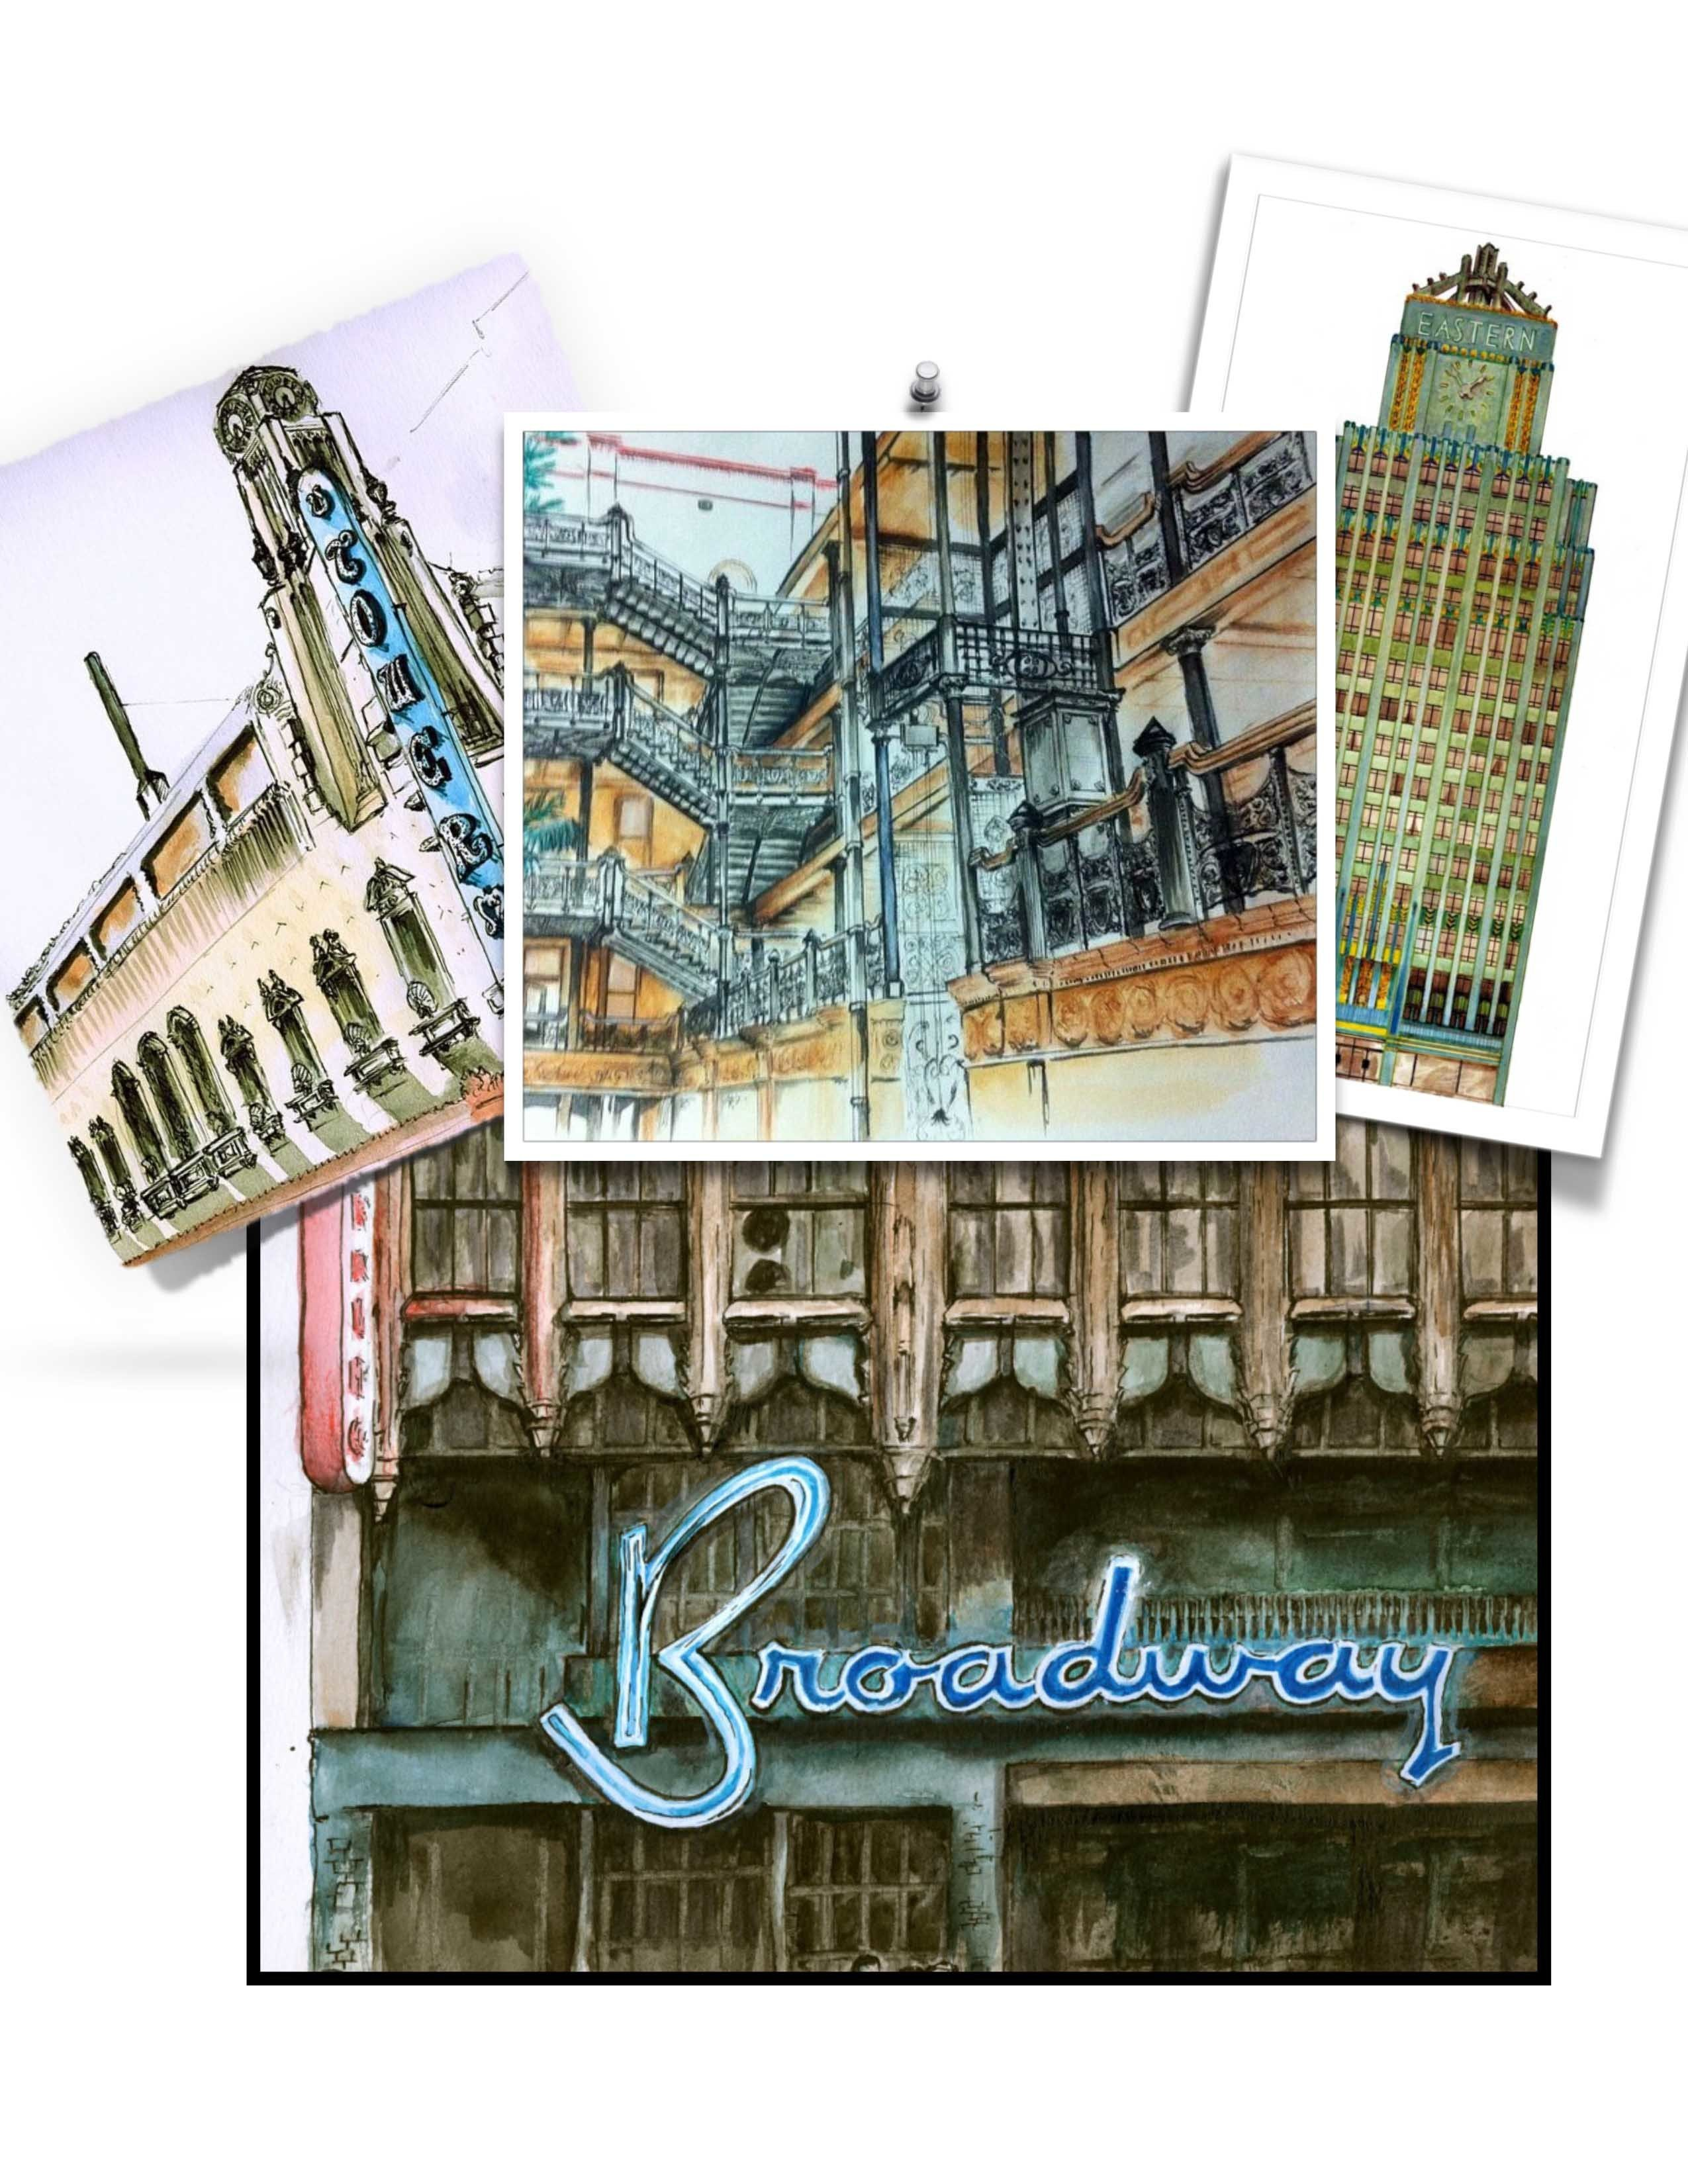 New Book - Illustrated tour of Broadway in downtown Los Angeles 00002